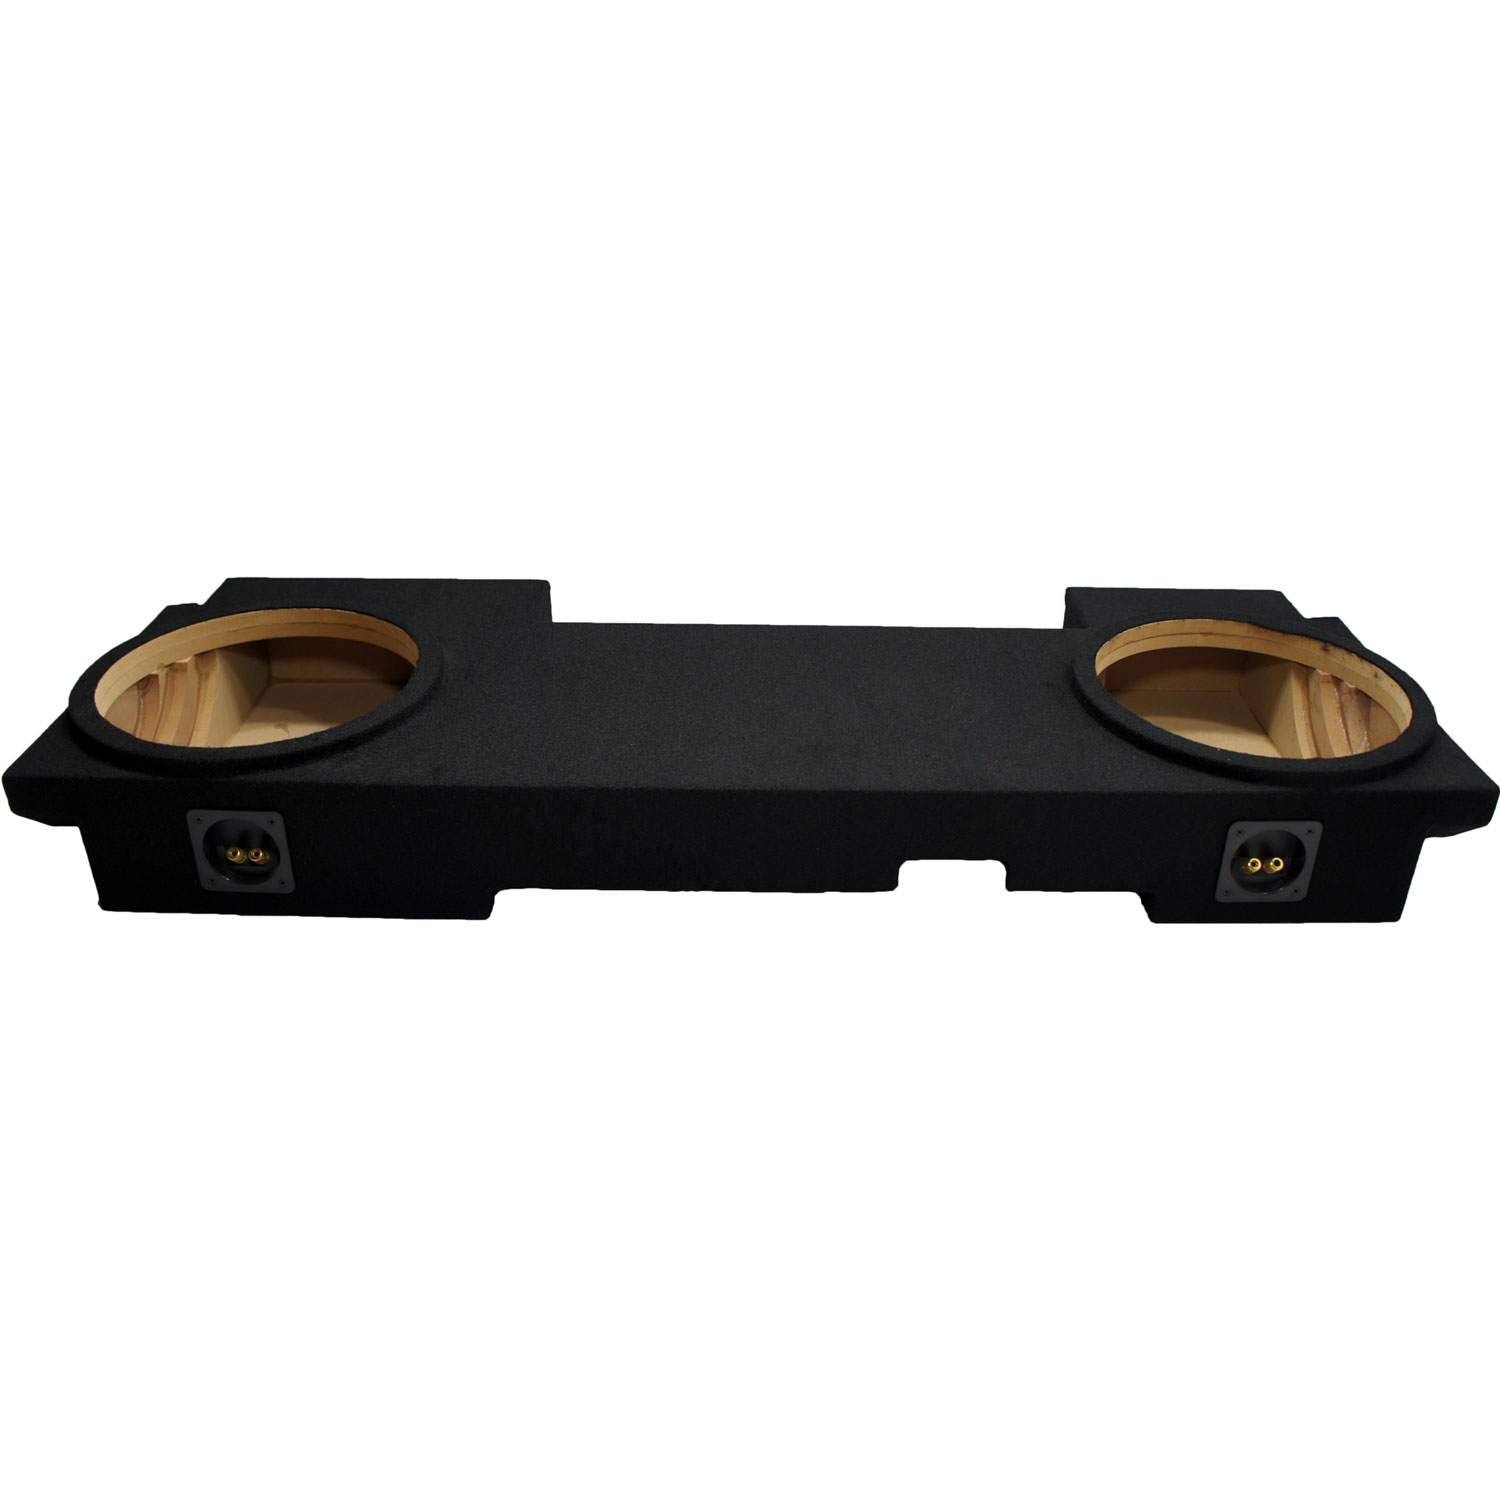 2002-2013 Cadillac Escalade Ext Car Audio Custom Dual 12 U0026quot  Subwoofer Enclosure Sub Box